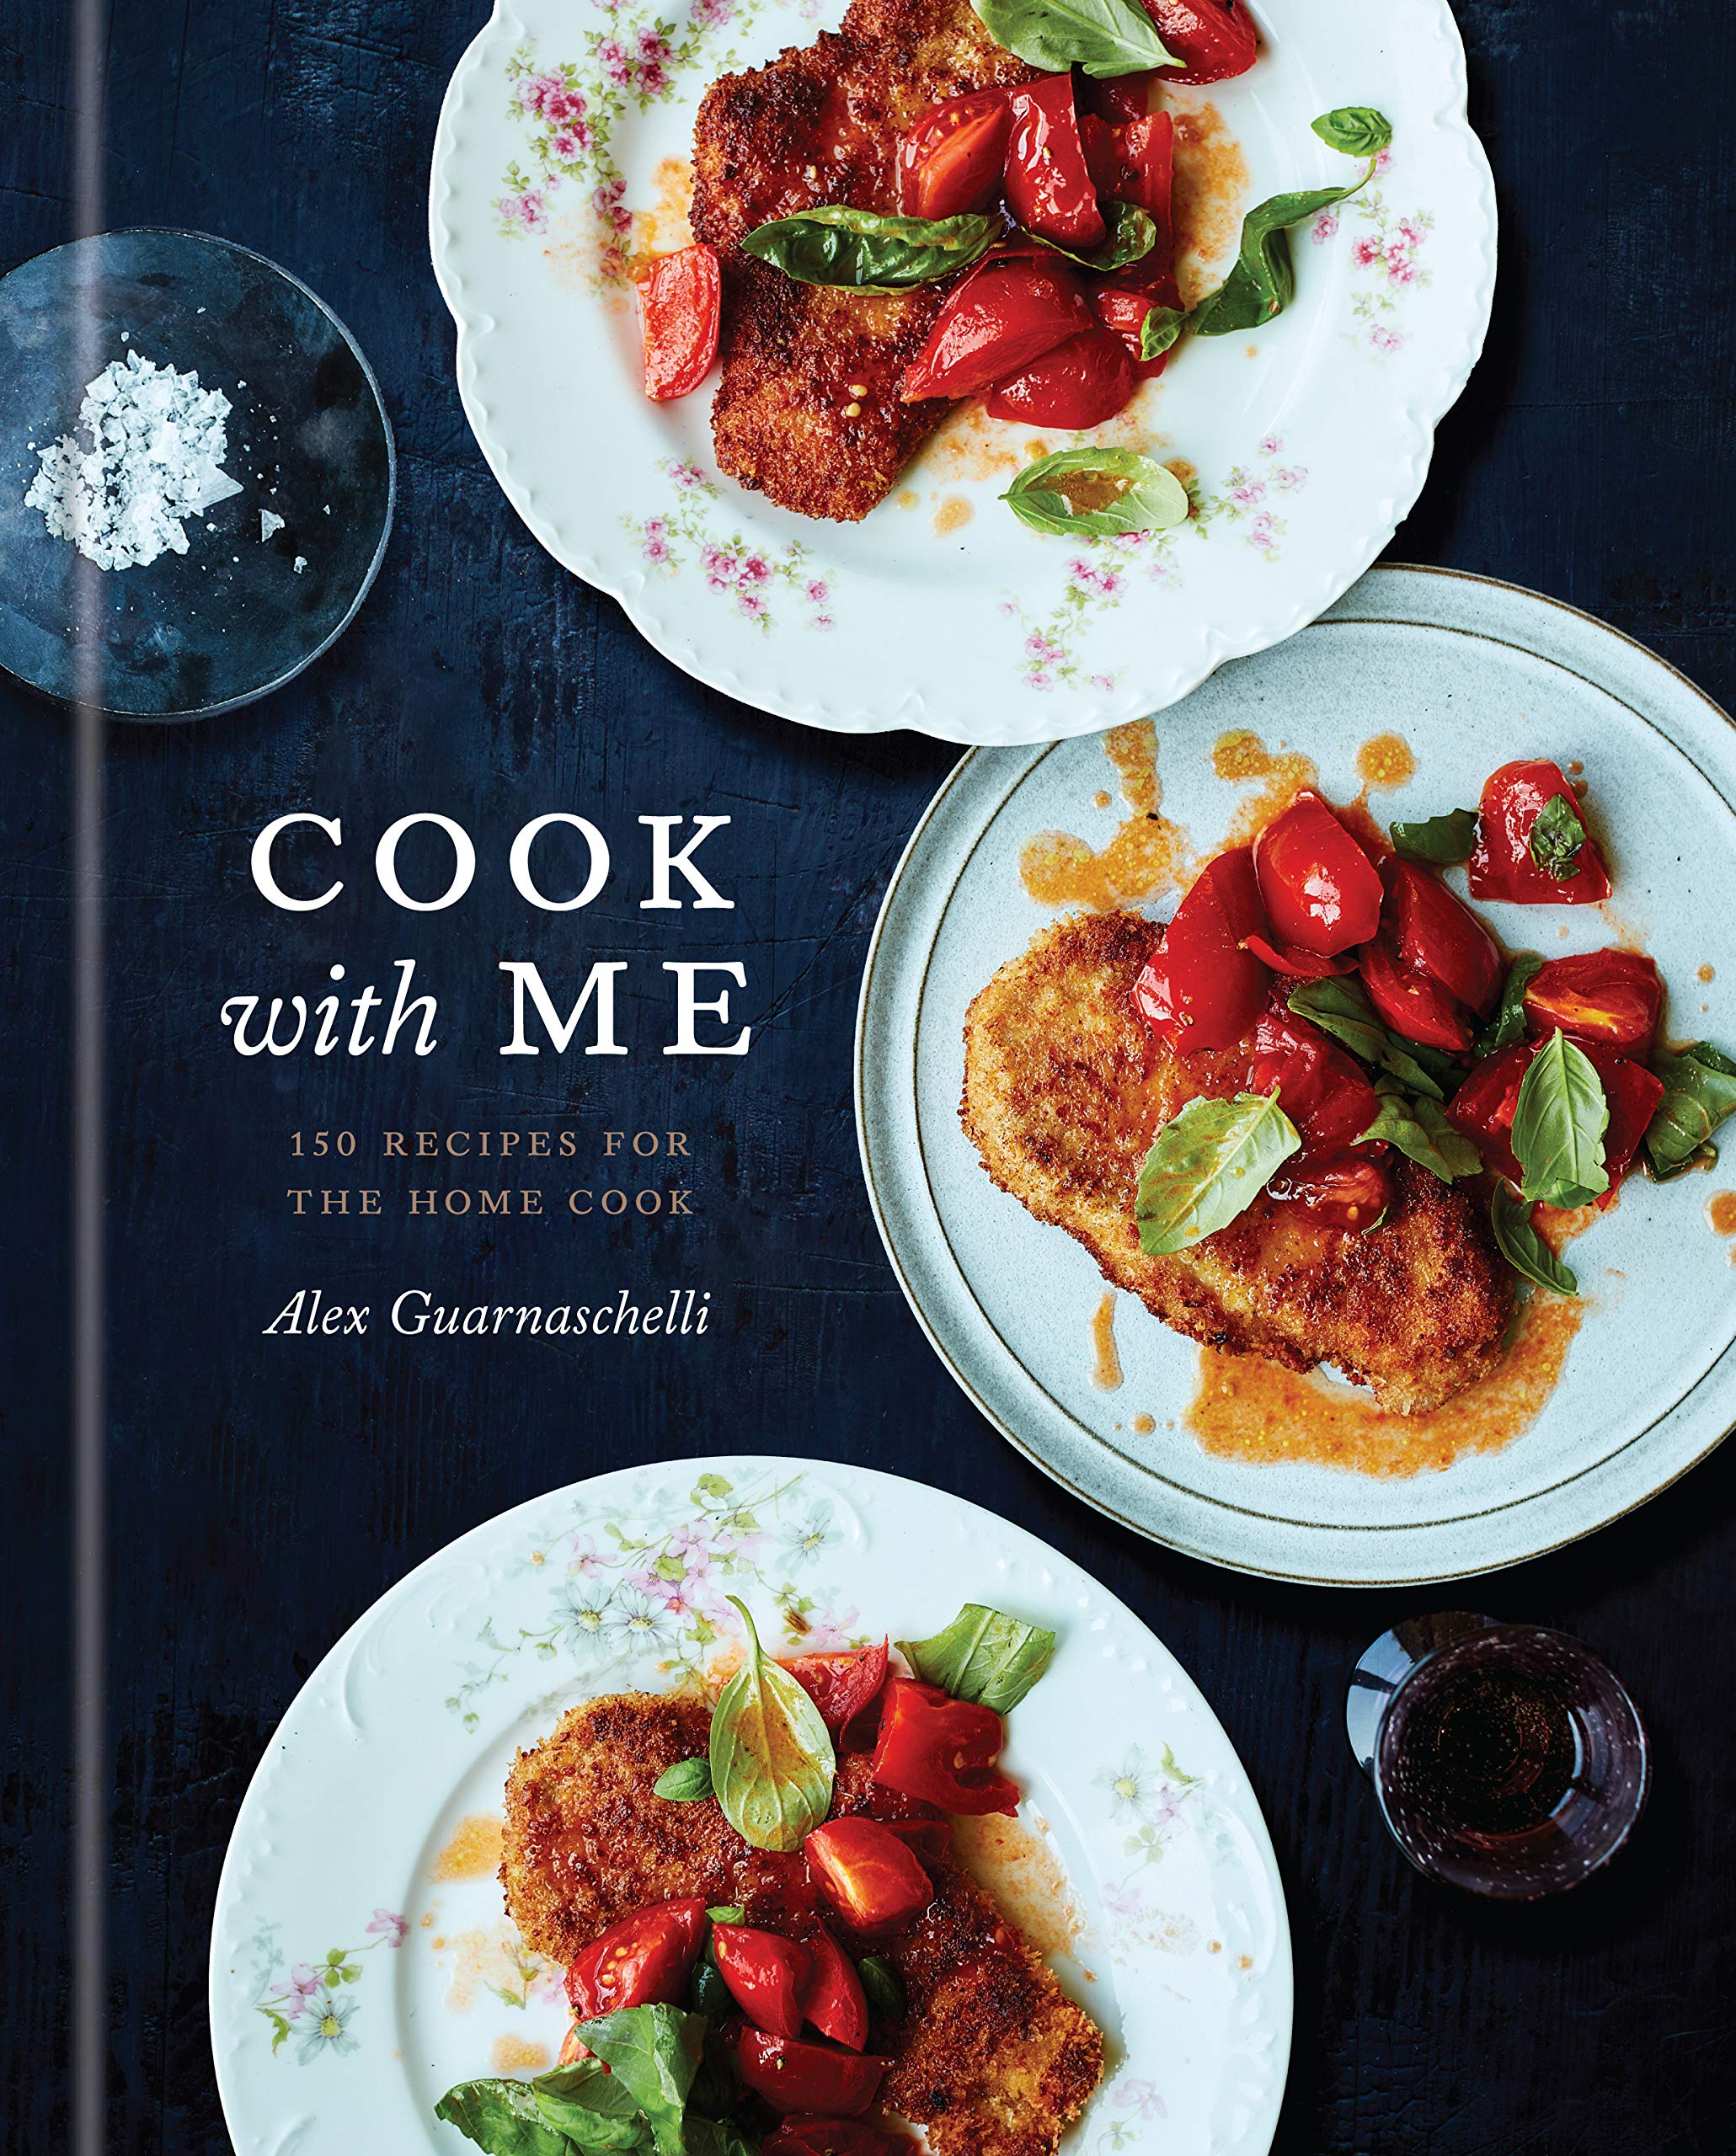 Download Pdf Cook With Me 150 Recipes For The Home Cook Online Bakuryu